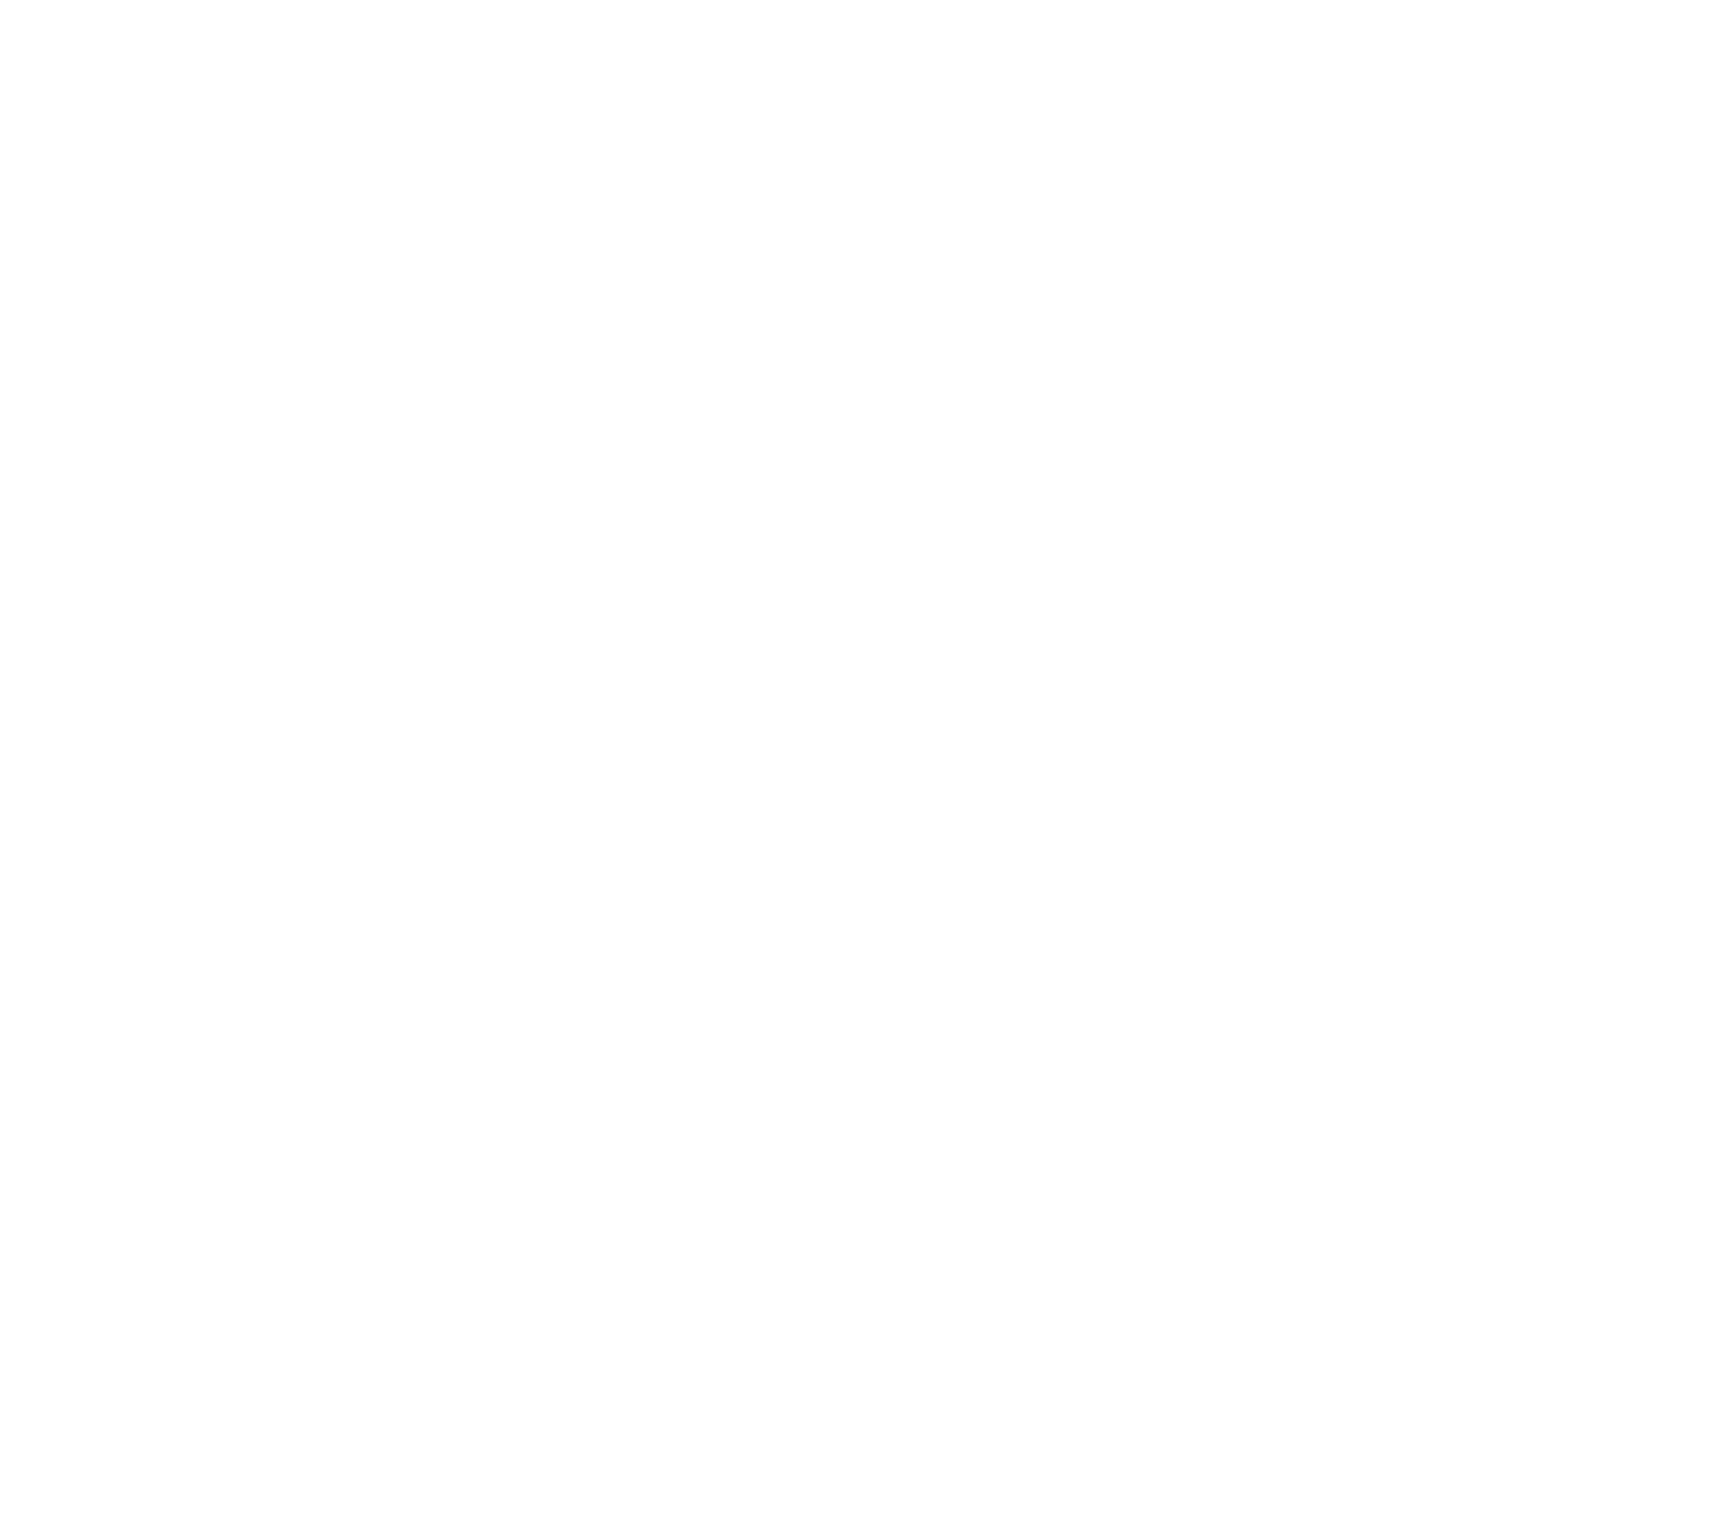 Order Your Jerseys with Sydney Social Soccer!